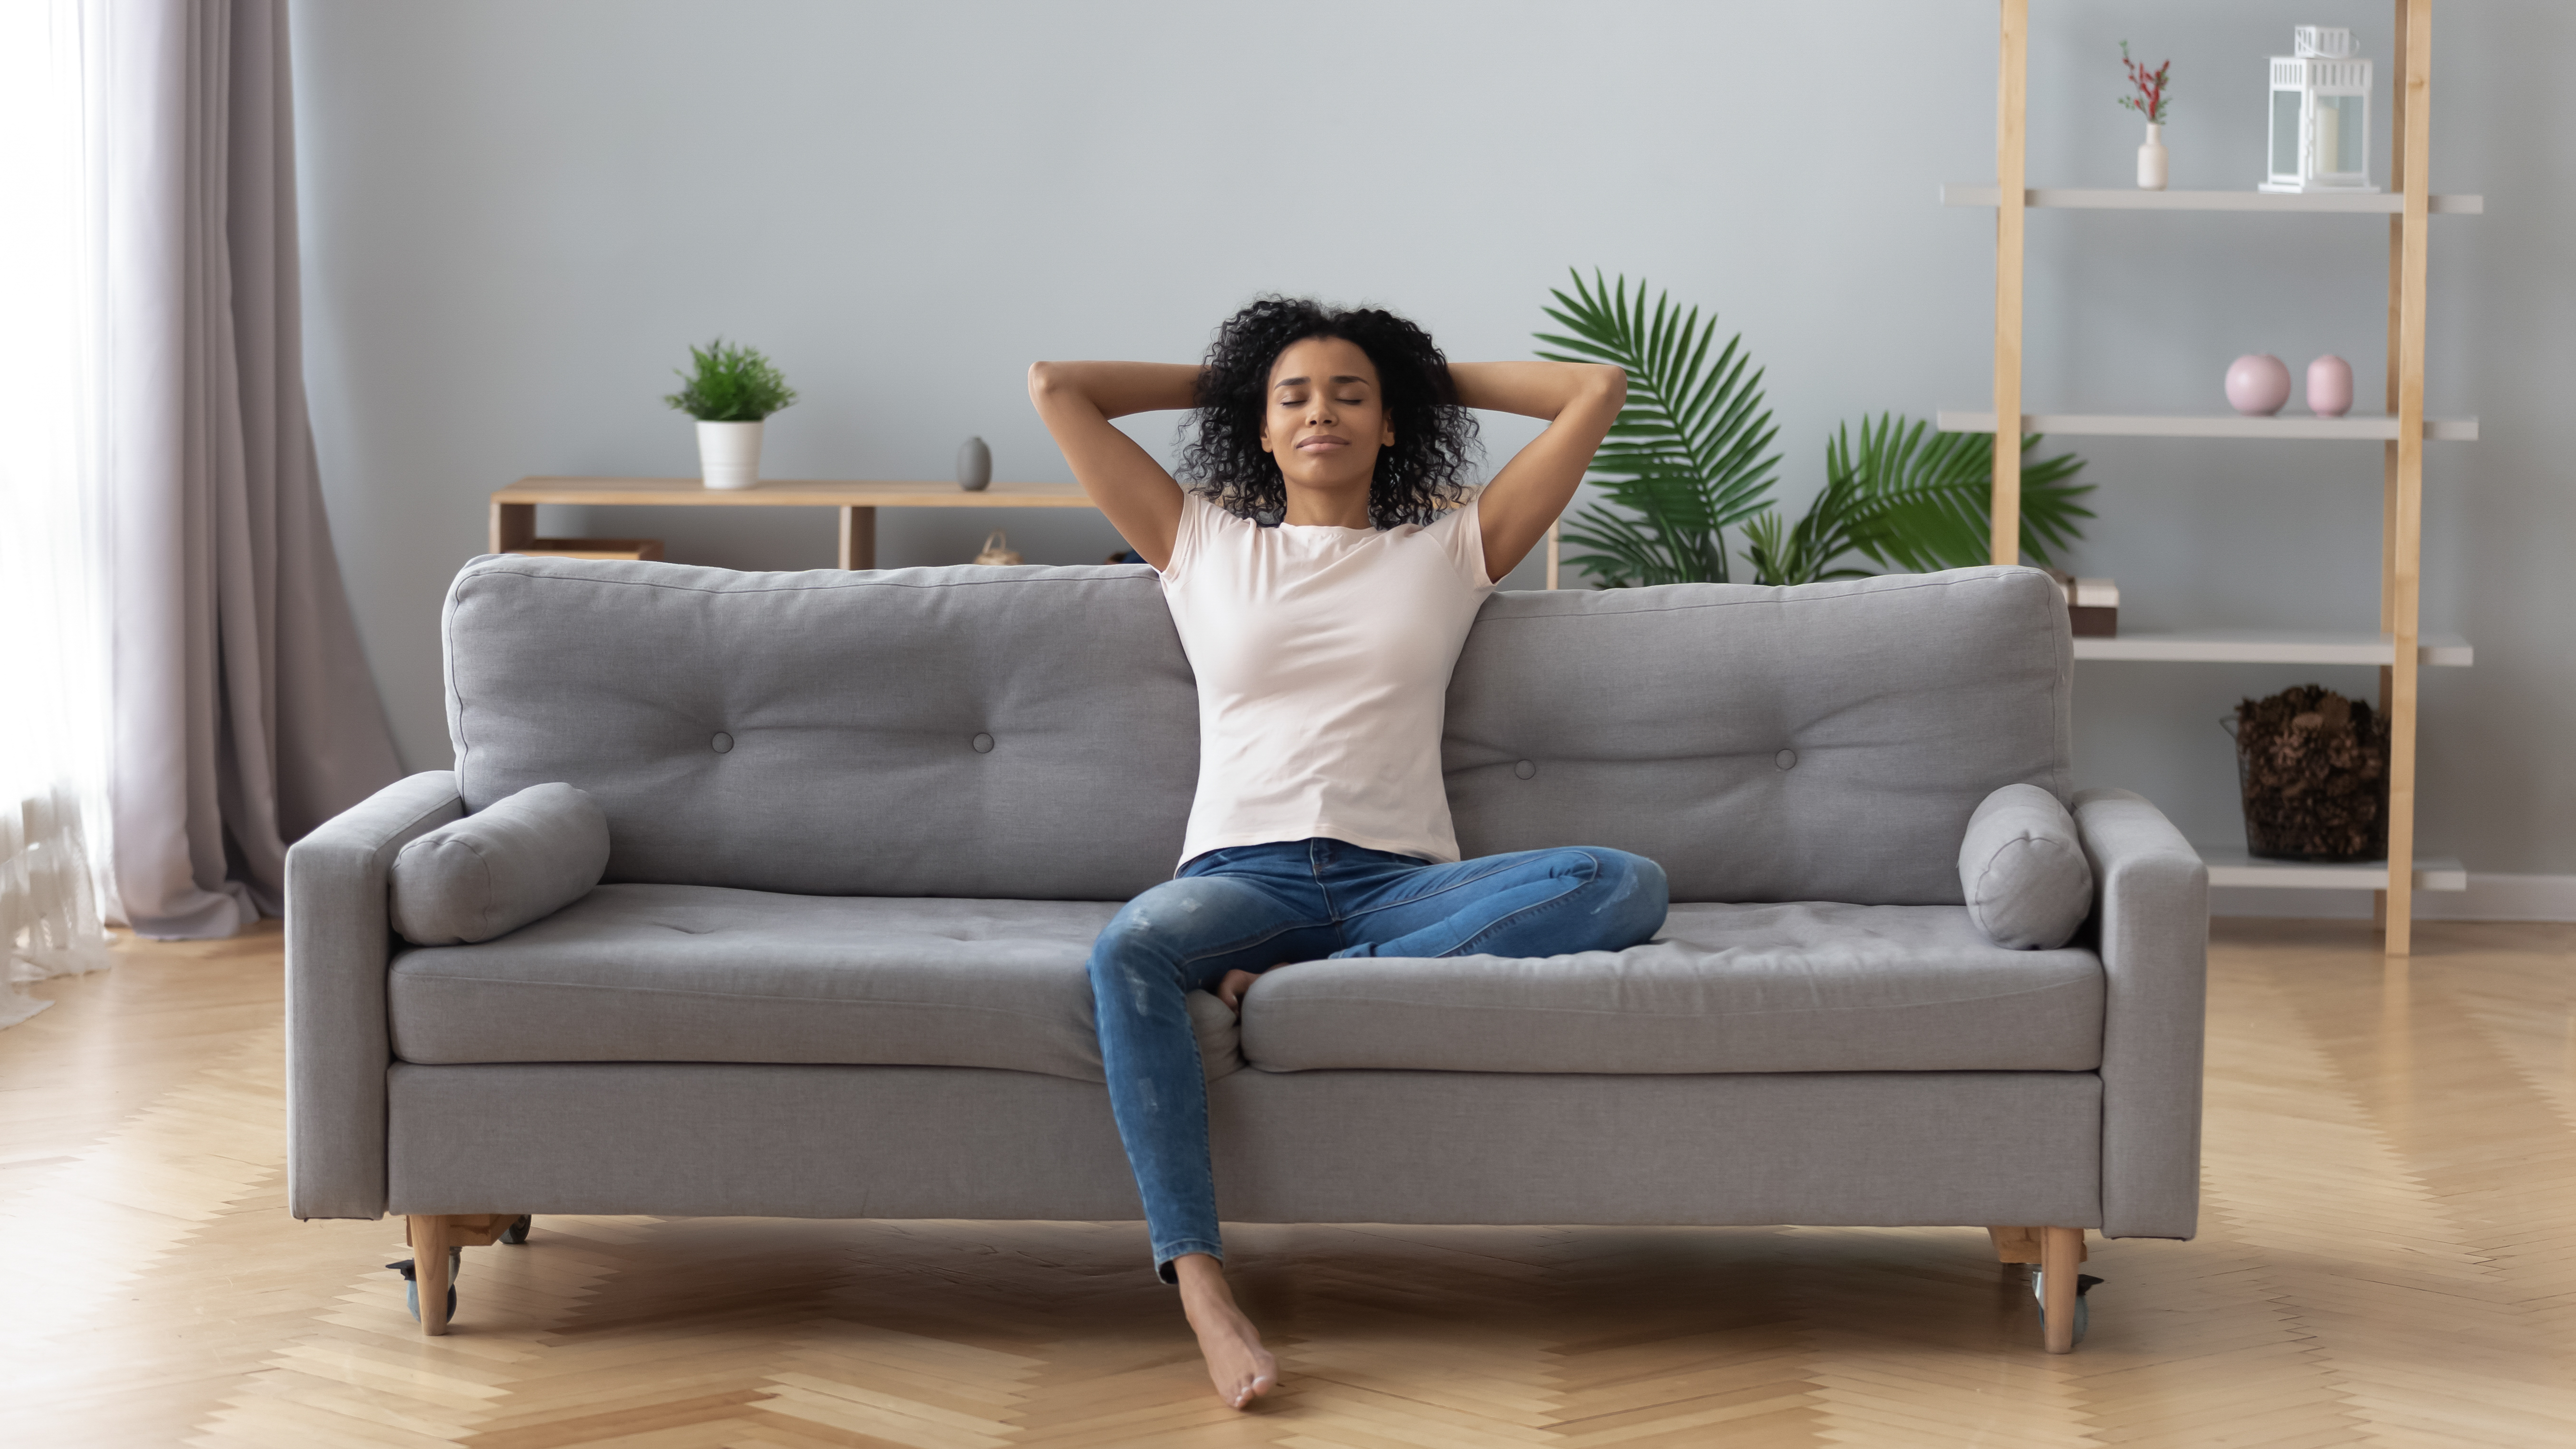 Lady relaxing on couch